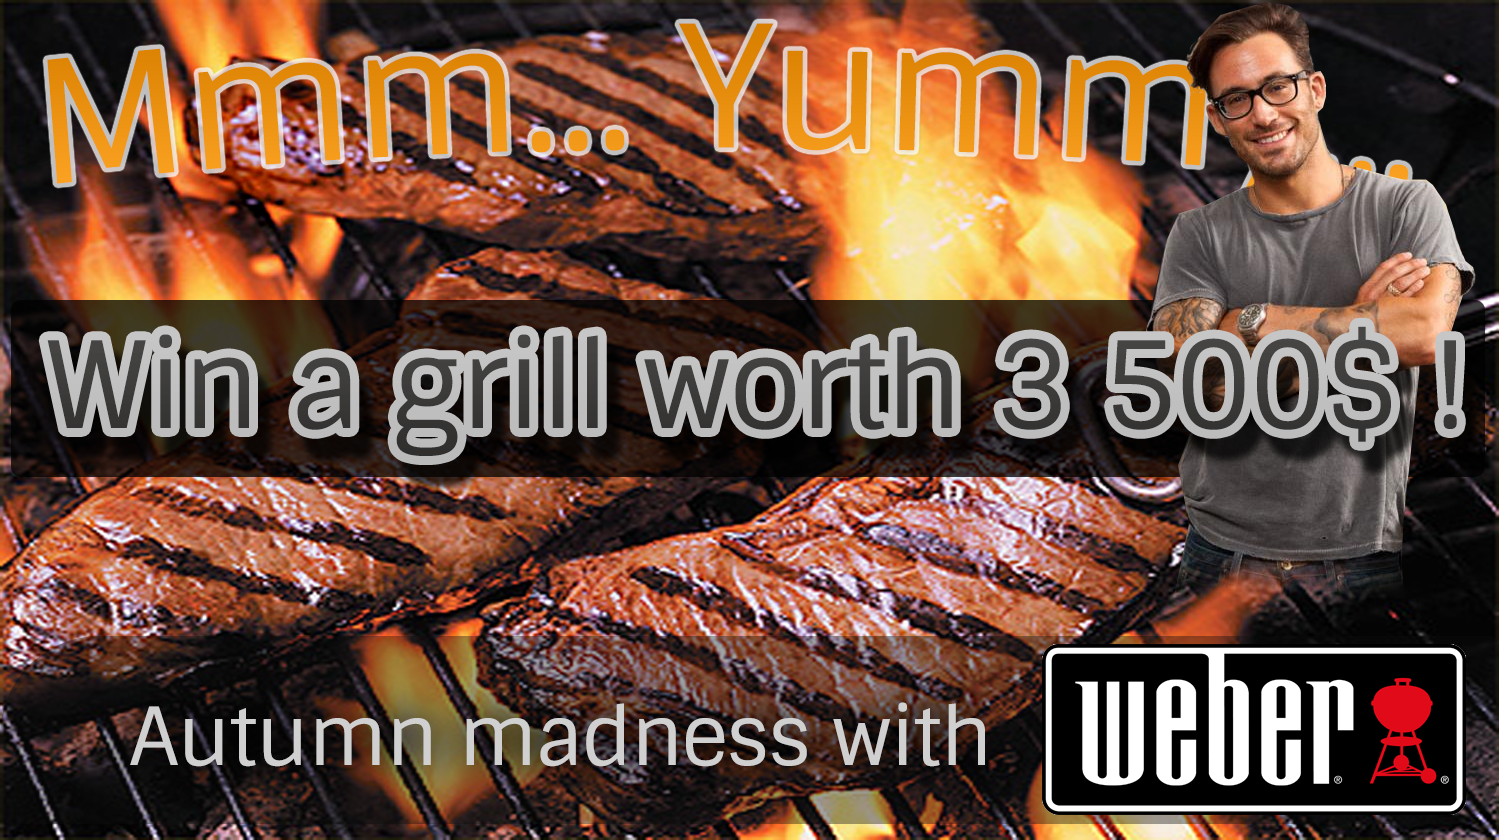 Weber Elektrogrill Usa : Win this nice grill! the grill is worth 3500$! the nice guy is not